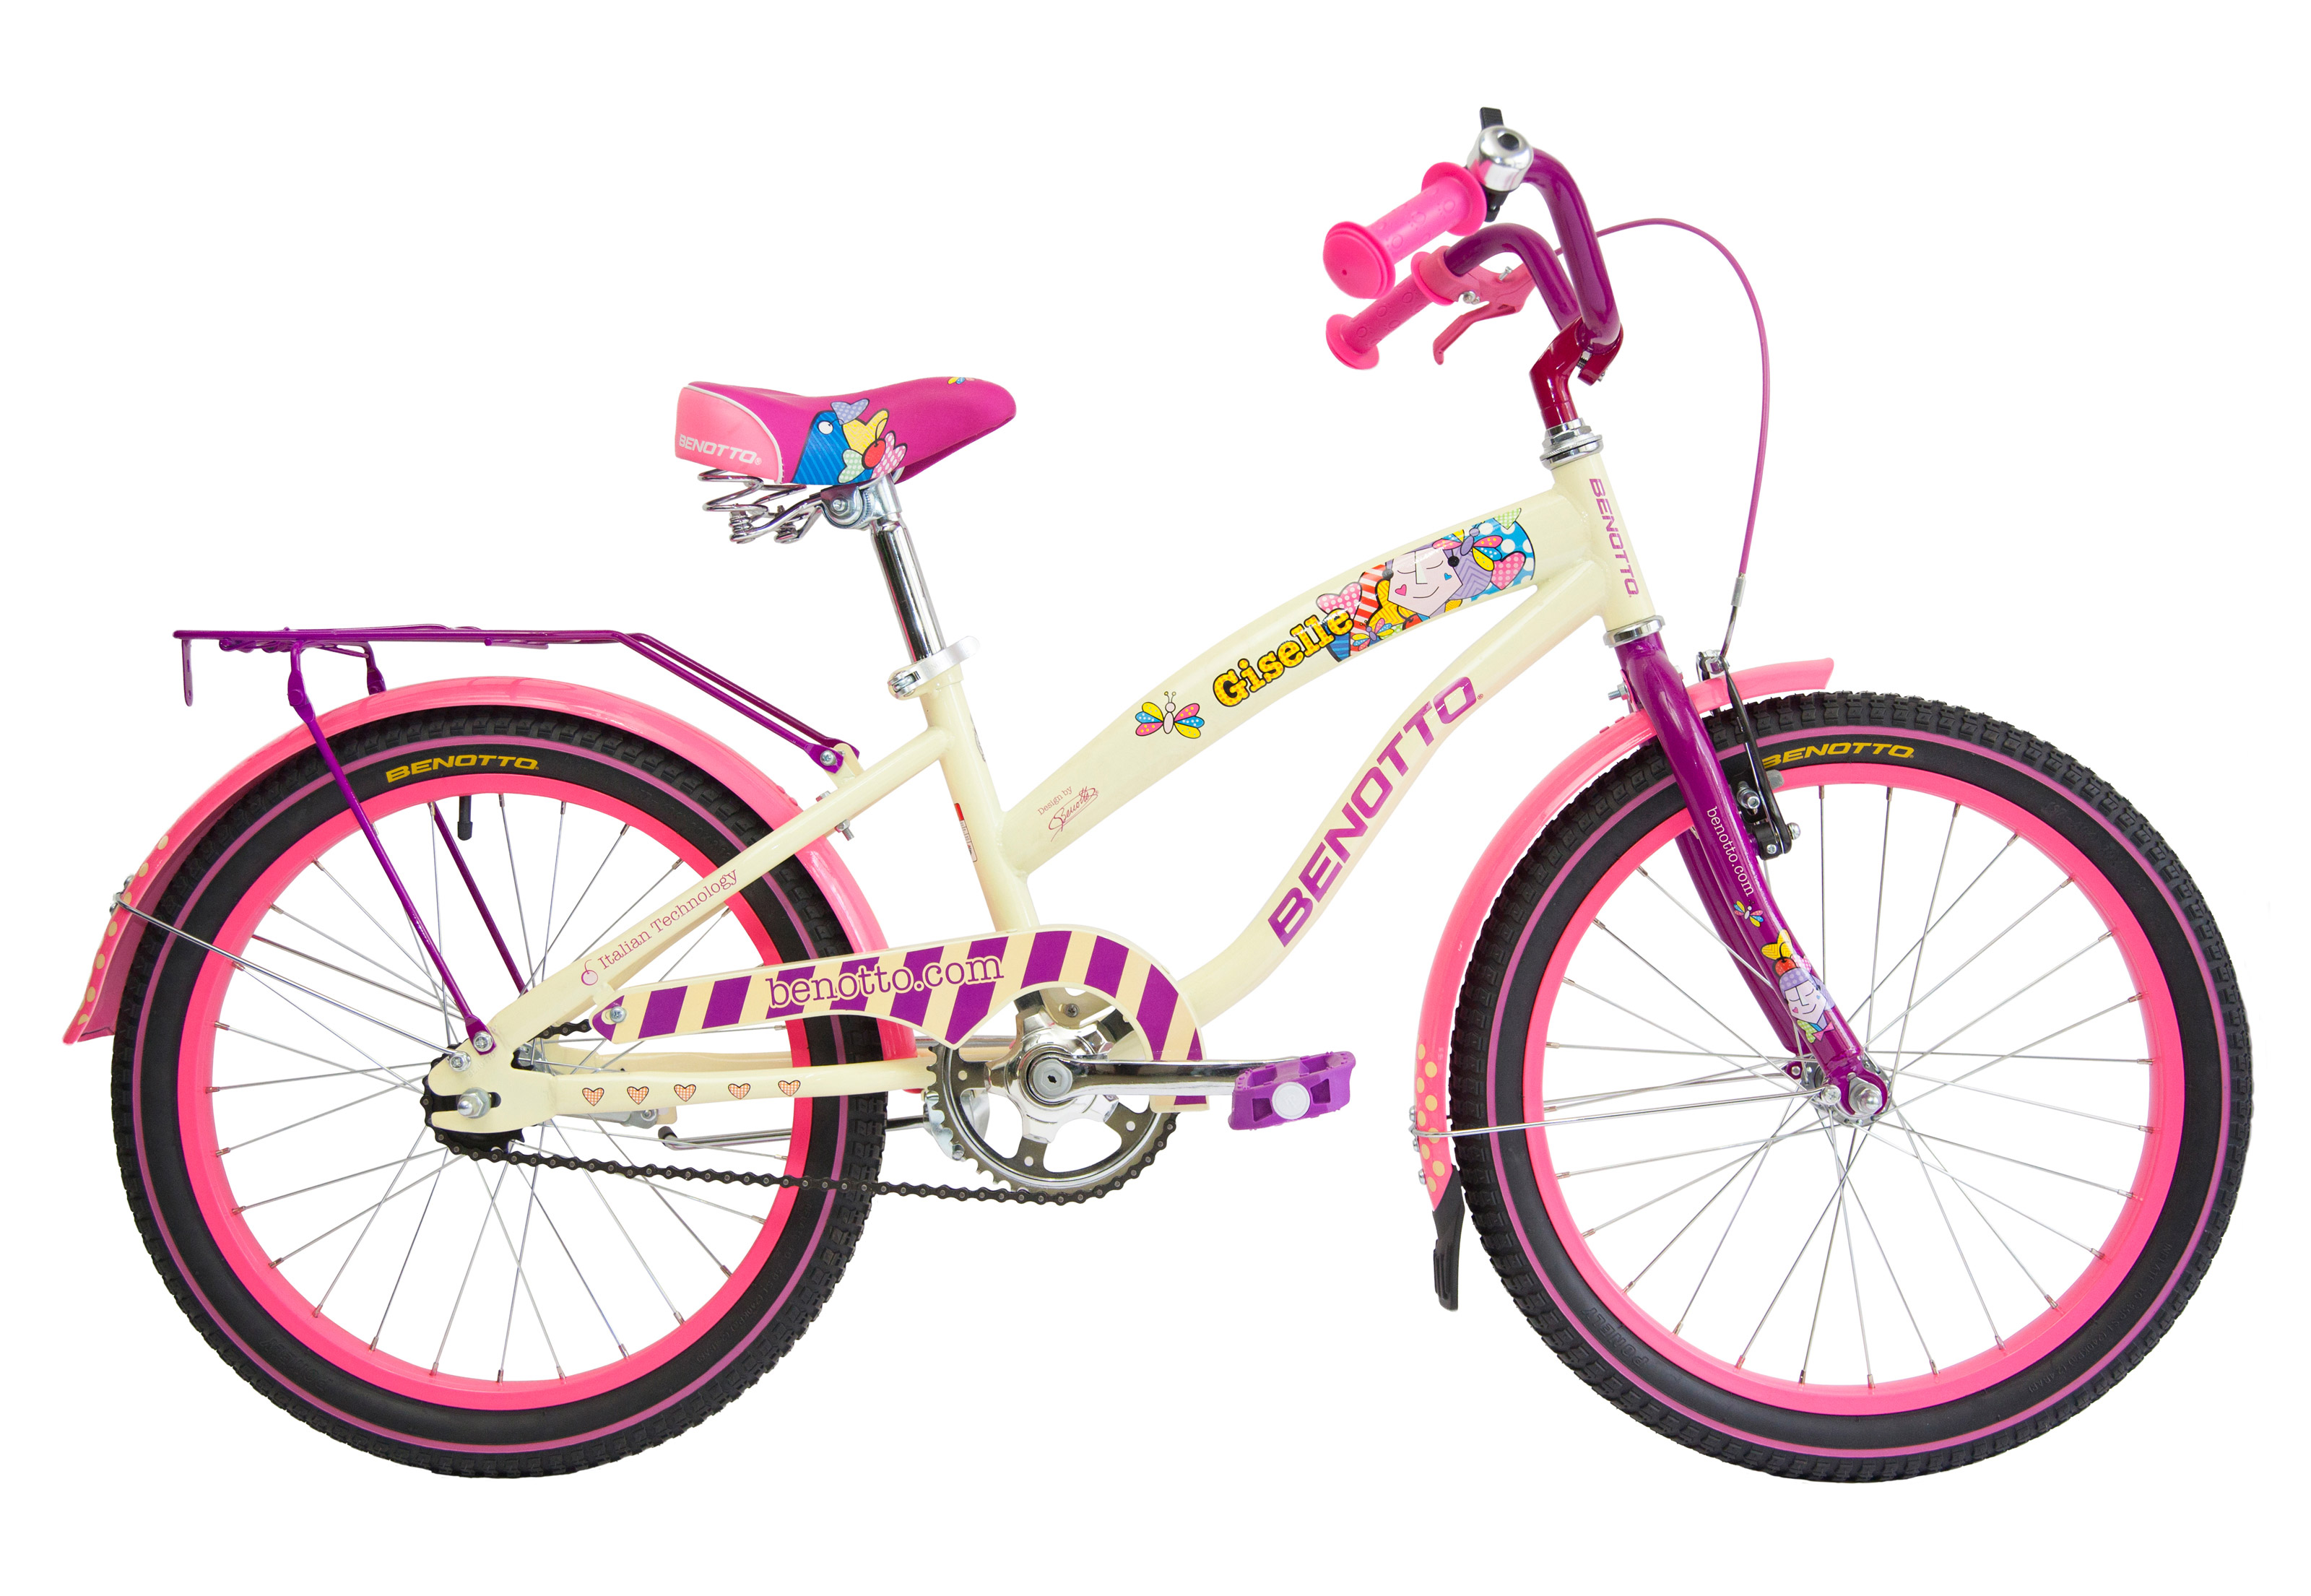 Bikes & Ride-ons Deals: 50 to 90% off deals on Groupon Goods. Lil' Rider Wiggle Ride-on Car. Lalaloopsy Light Up Helmet.